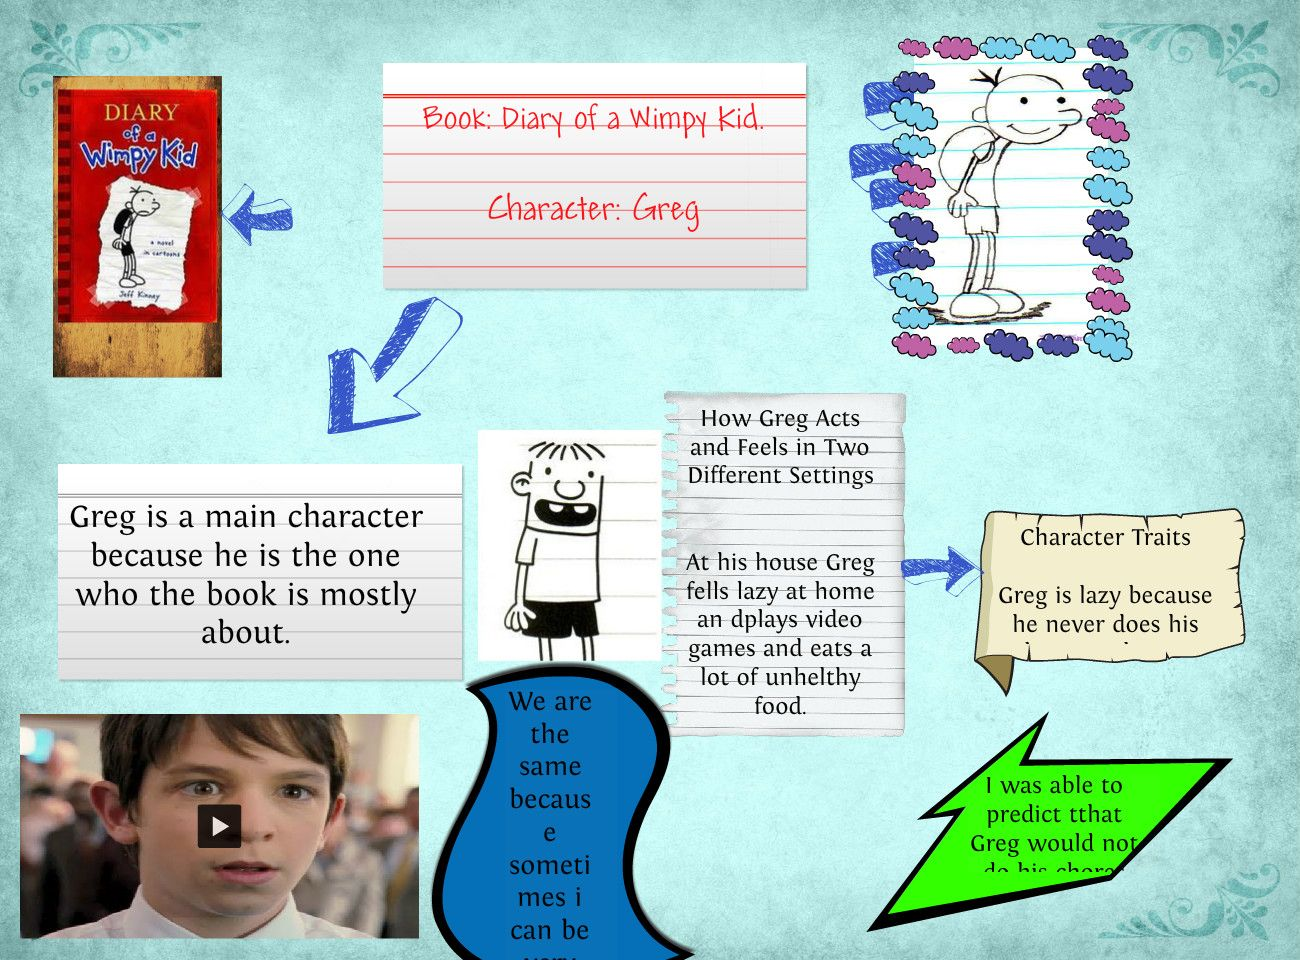 diary of a wimpy kid 1 essay Diary of a wimpy kid old school check out our autographed copies find this pin and more on read irresponsibly by coffeetree books diary of a wimpy kid old school check out our autographed copies.